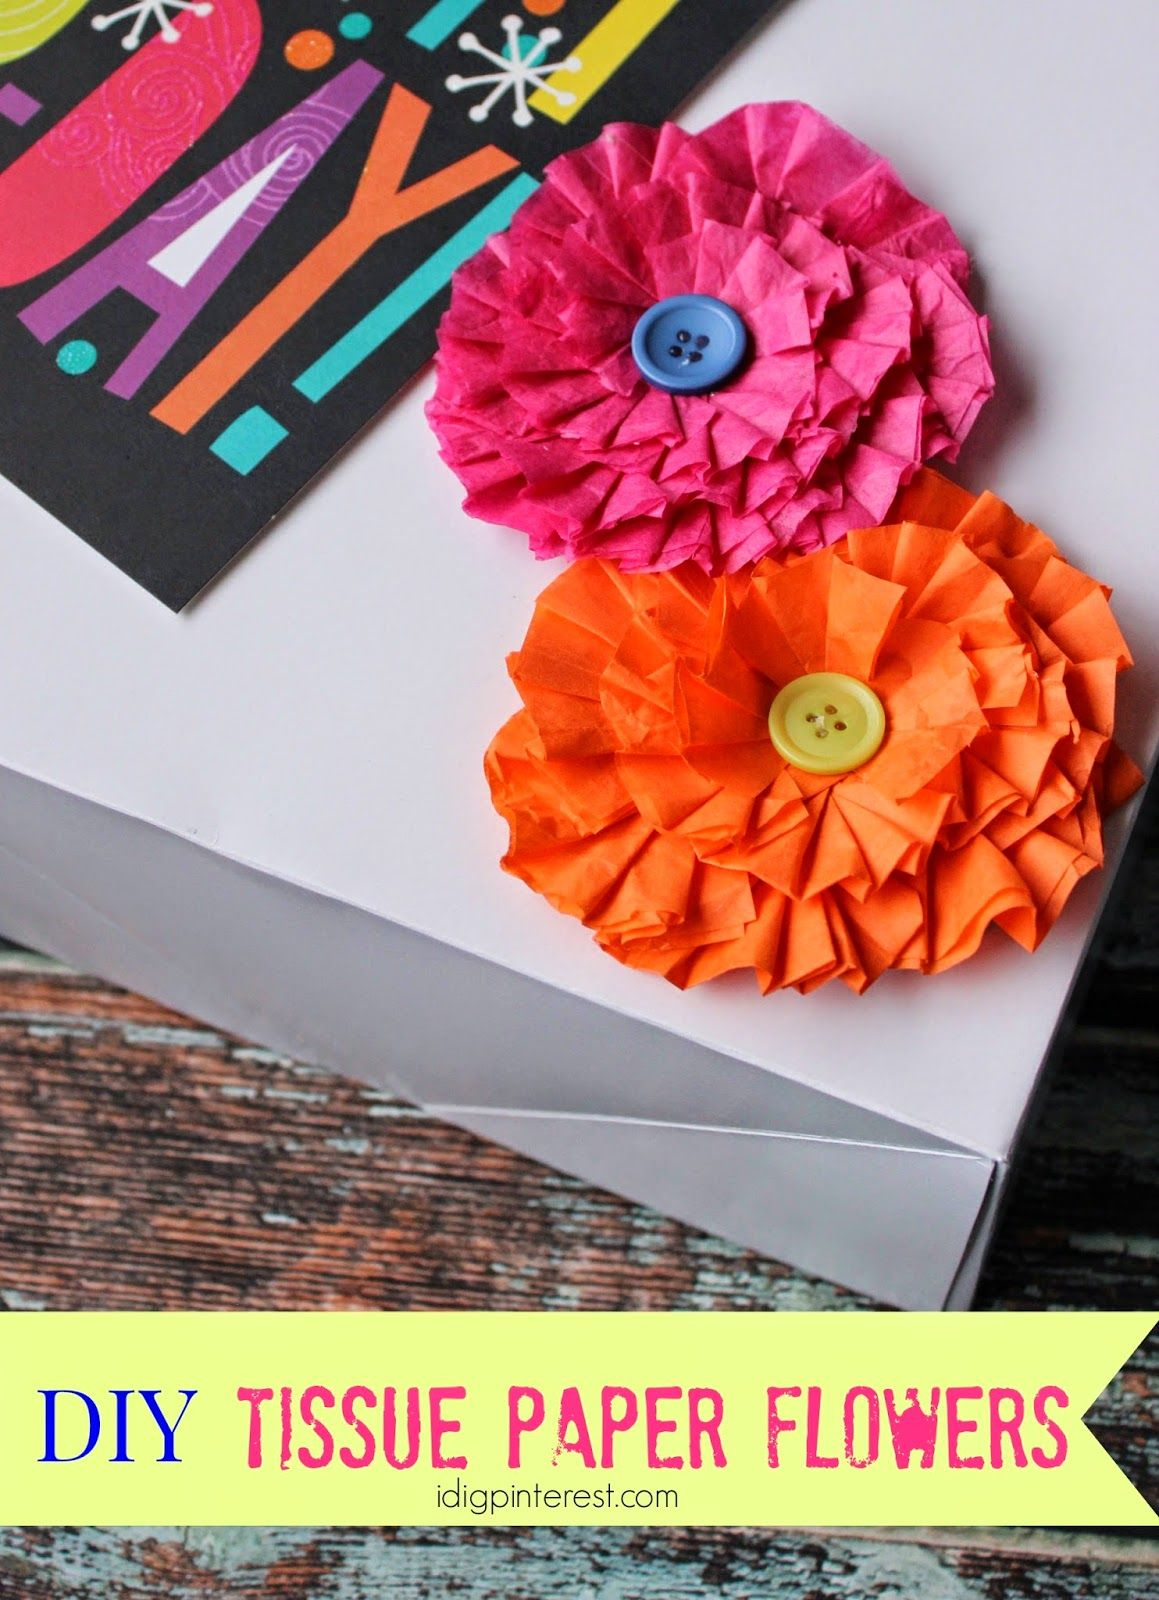 How To Make Decorative Tissue Paper Flowers Diy Ideas Pinterest